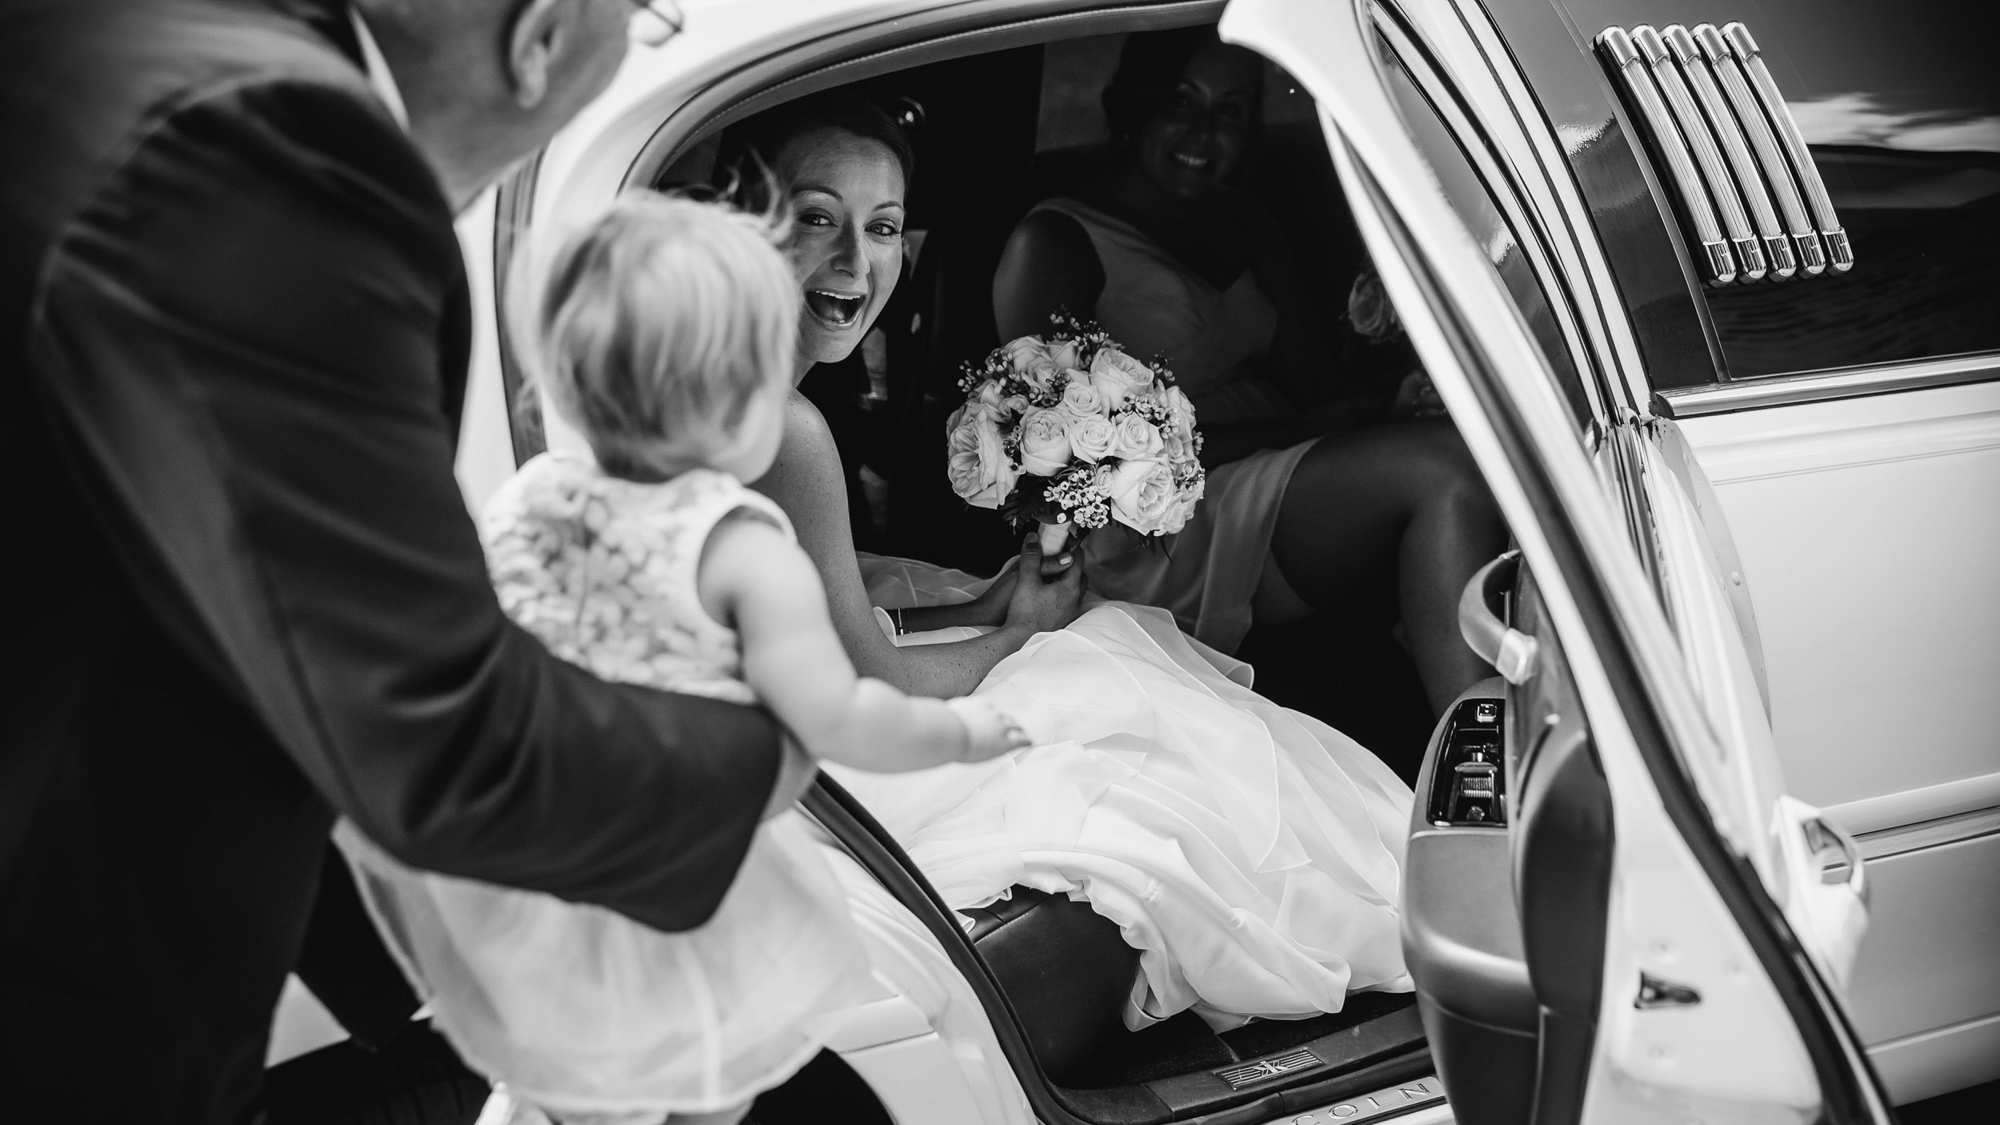 Documentary Photojournalistic Professional Wedding Photography